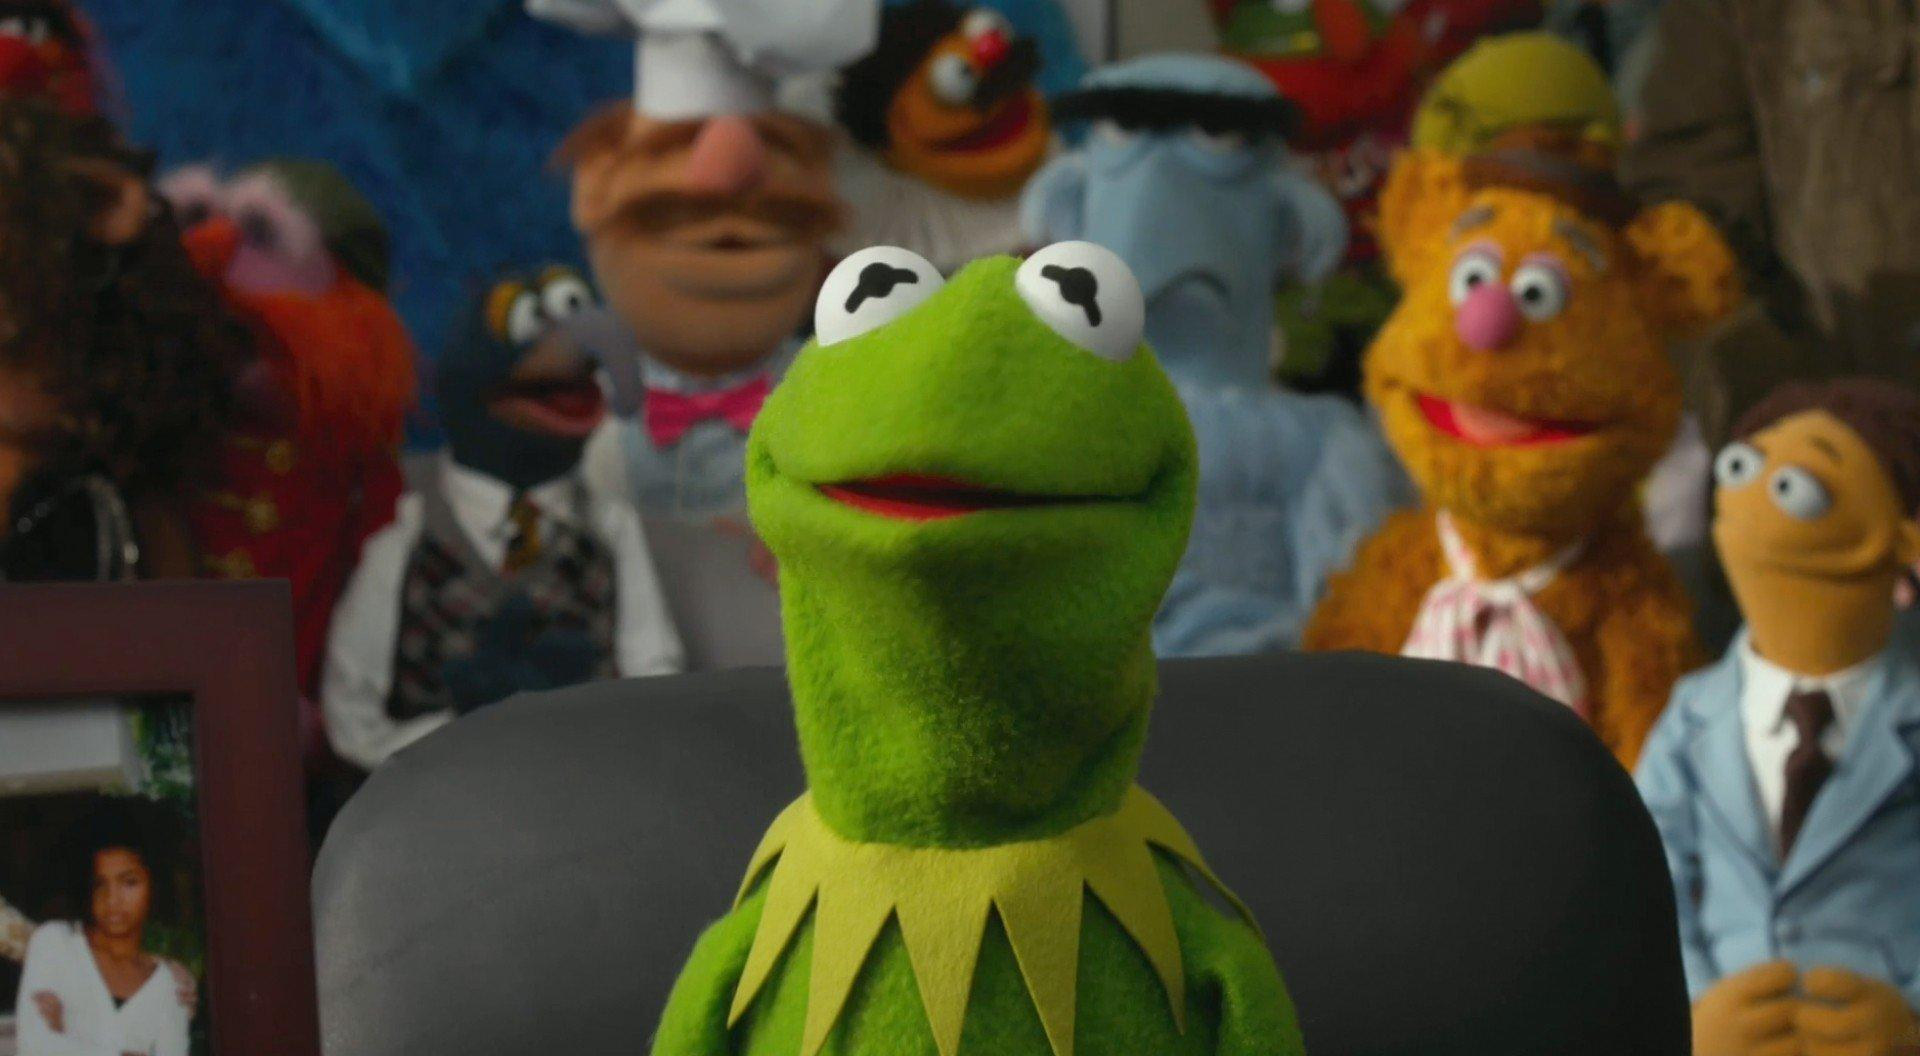 Muppet Studios, Hensons, and Whitmire All Share Perspectives on Steve Whitmire's Dismissal